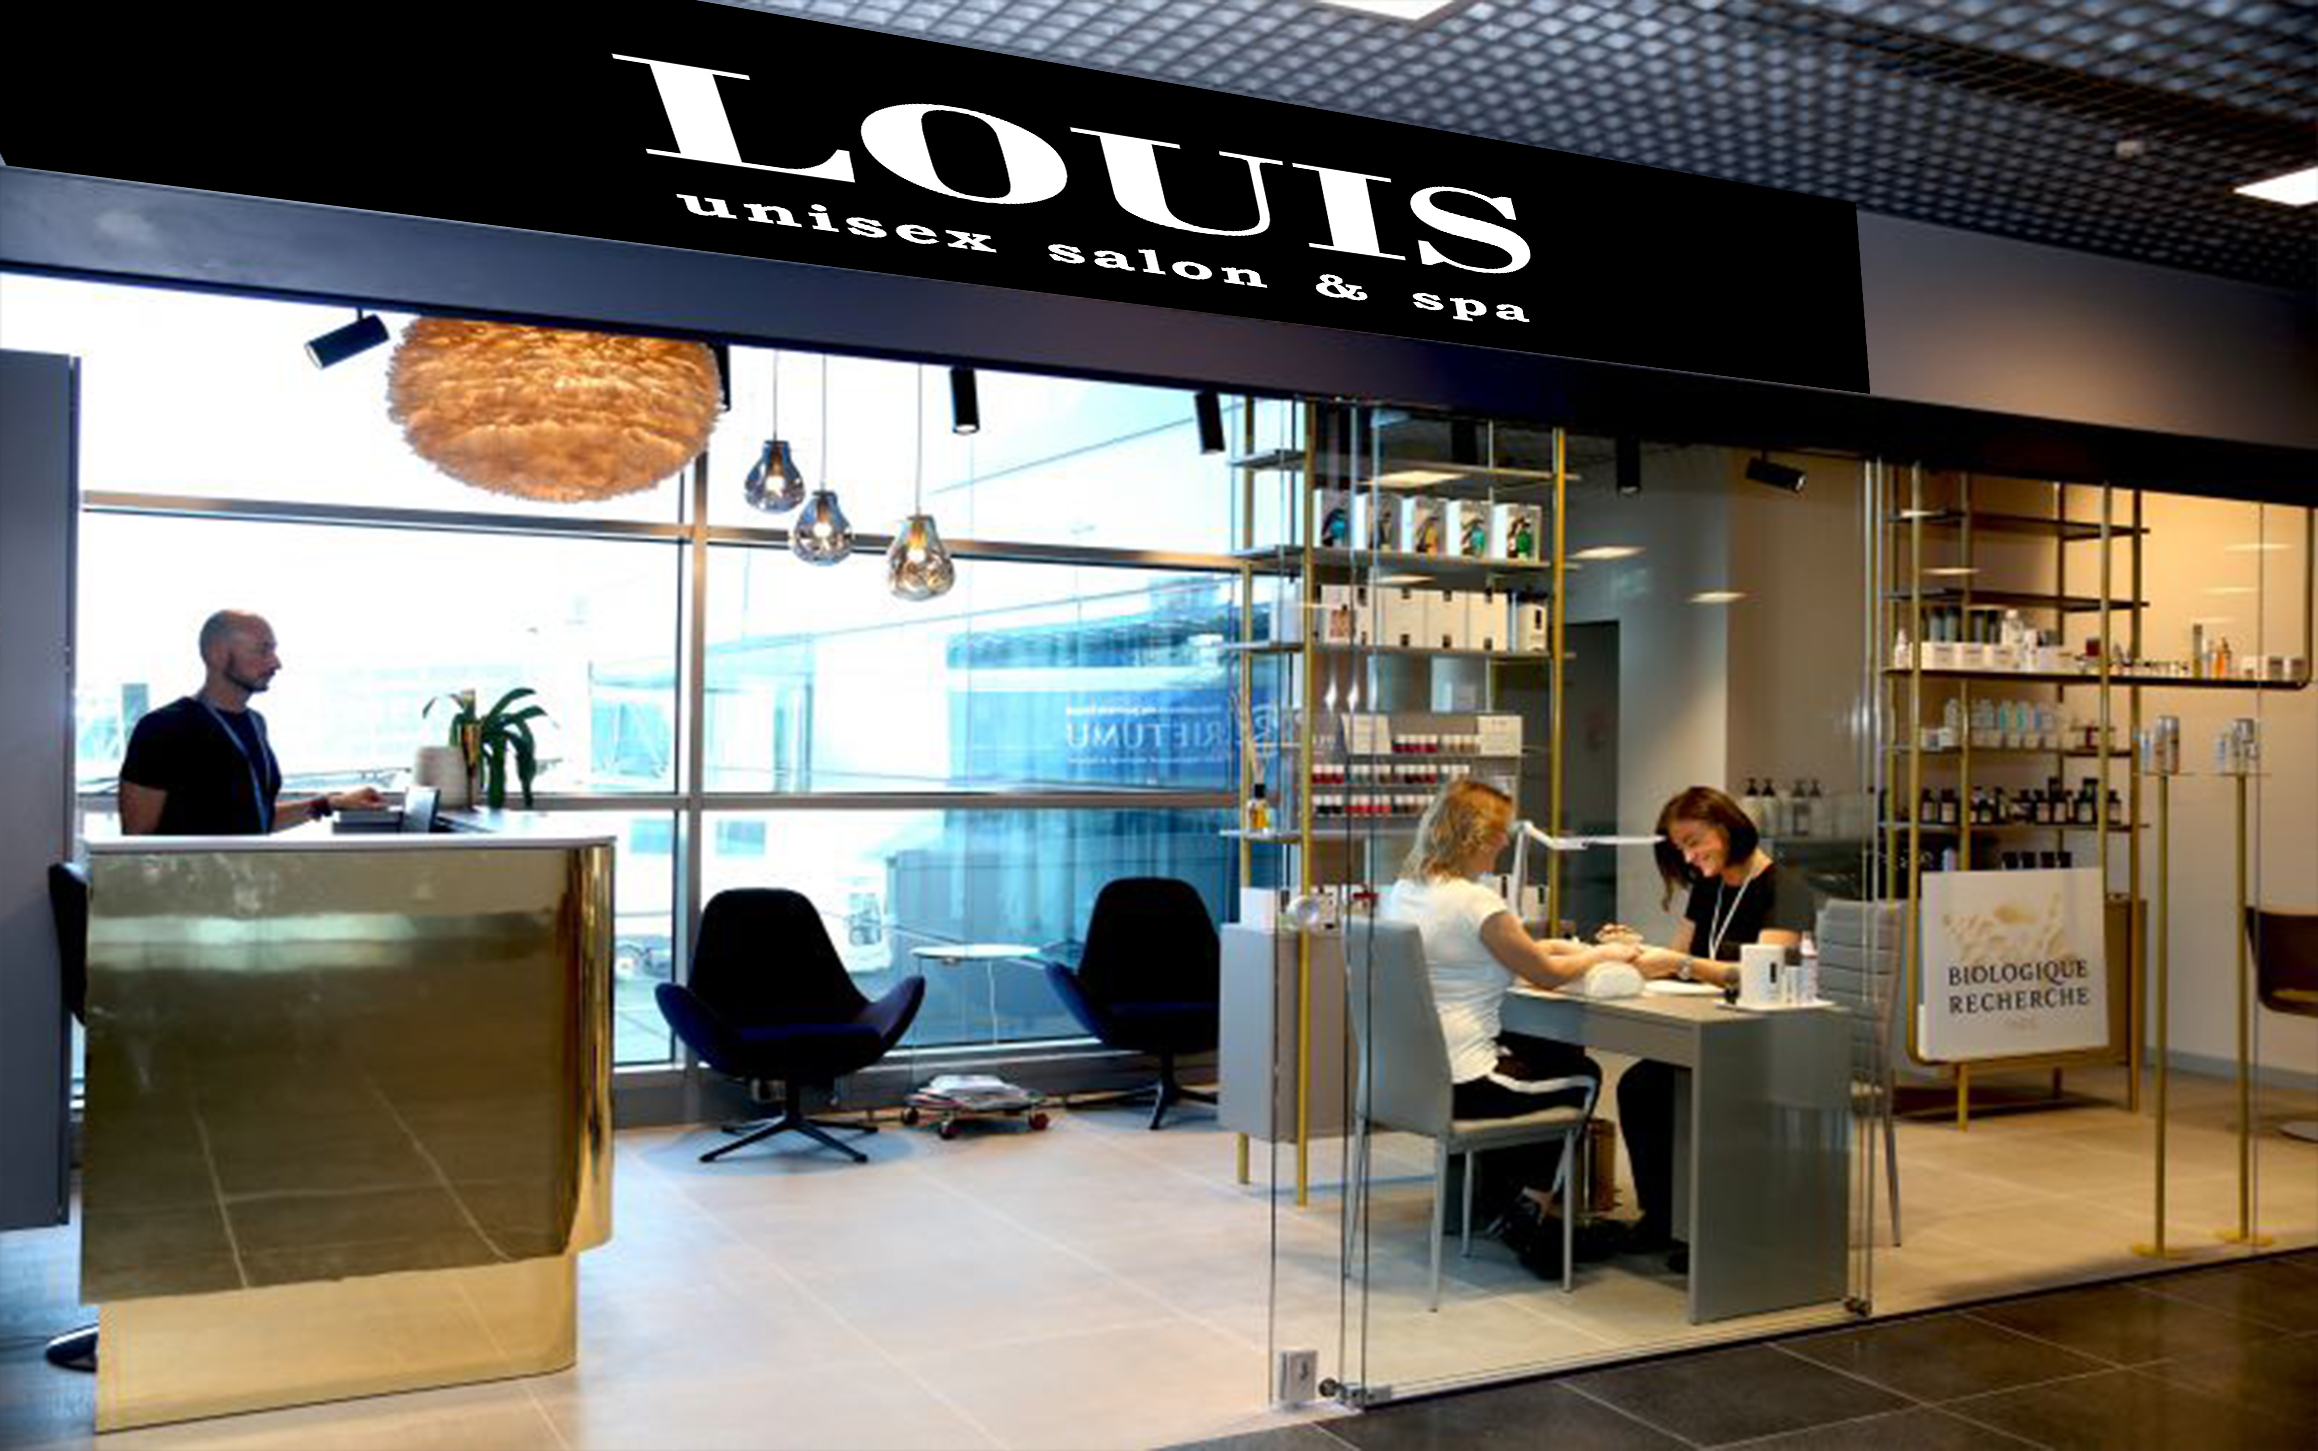 louis+unisex+salon+dubai 3